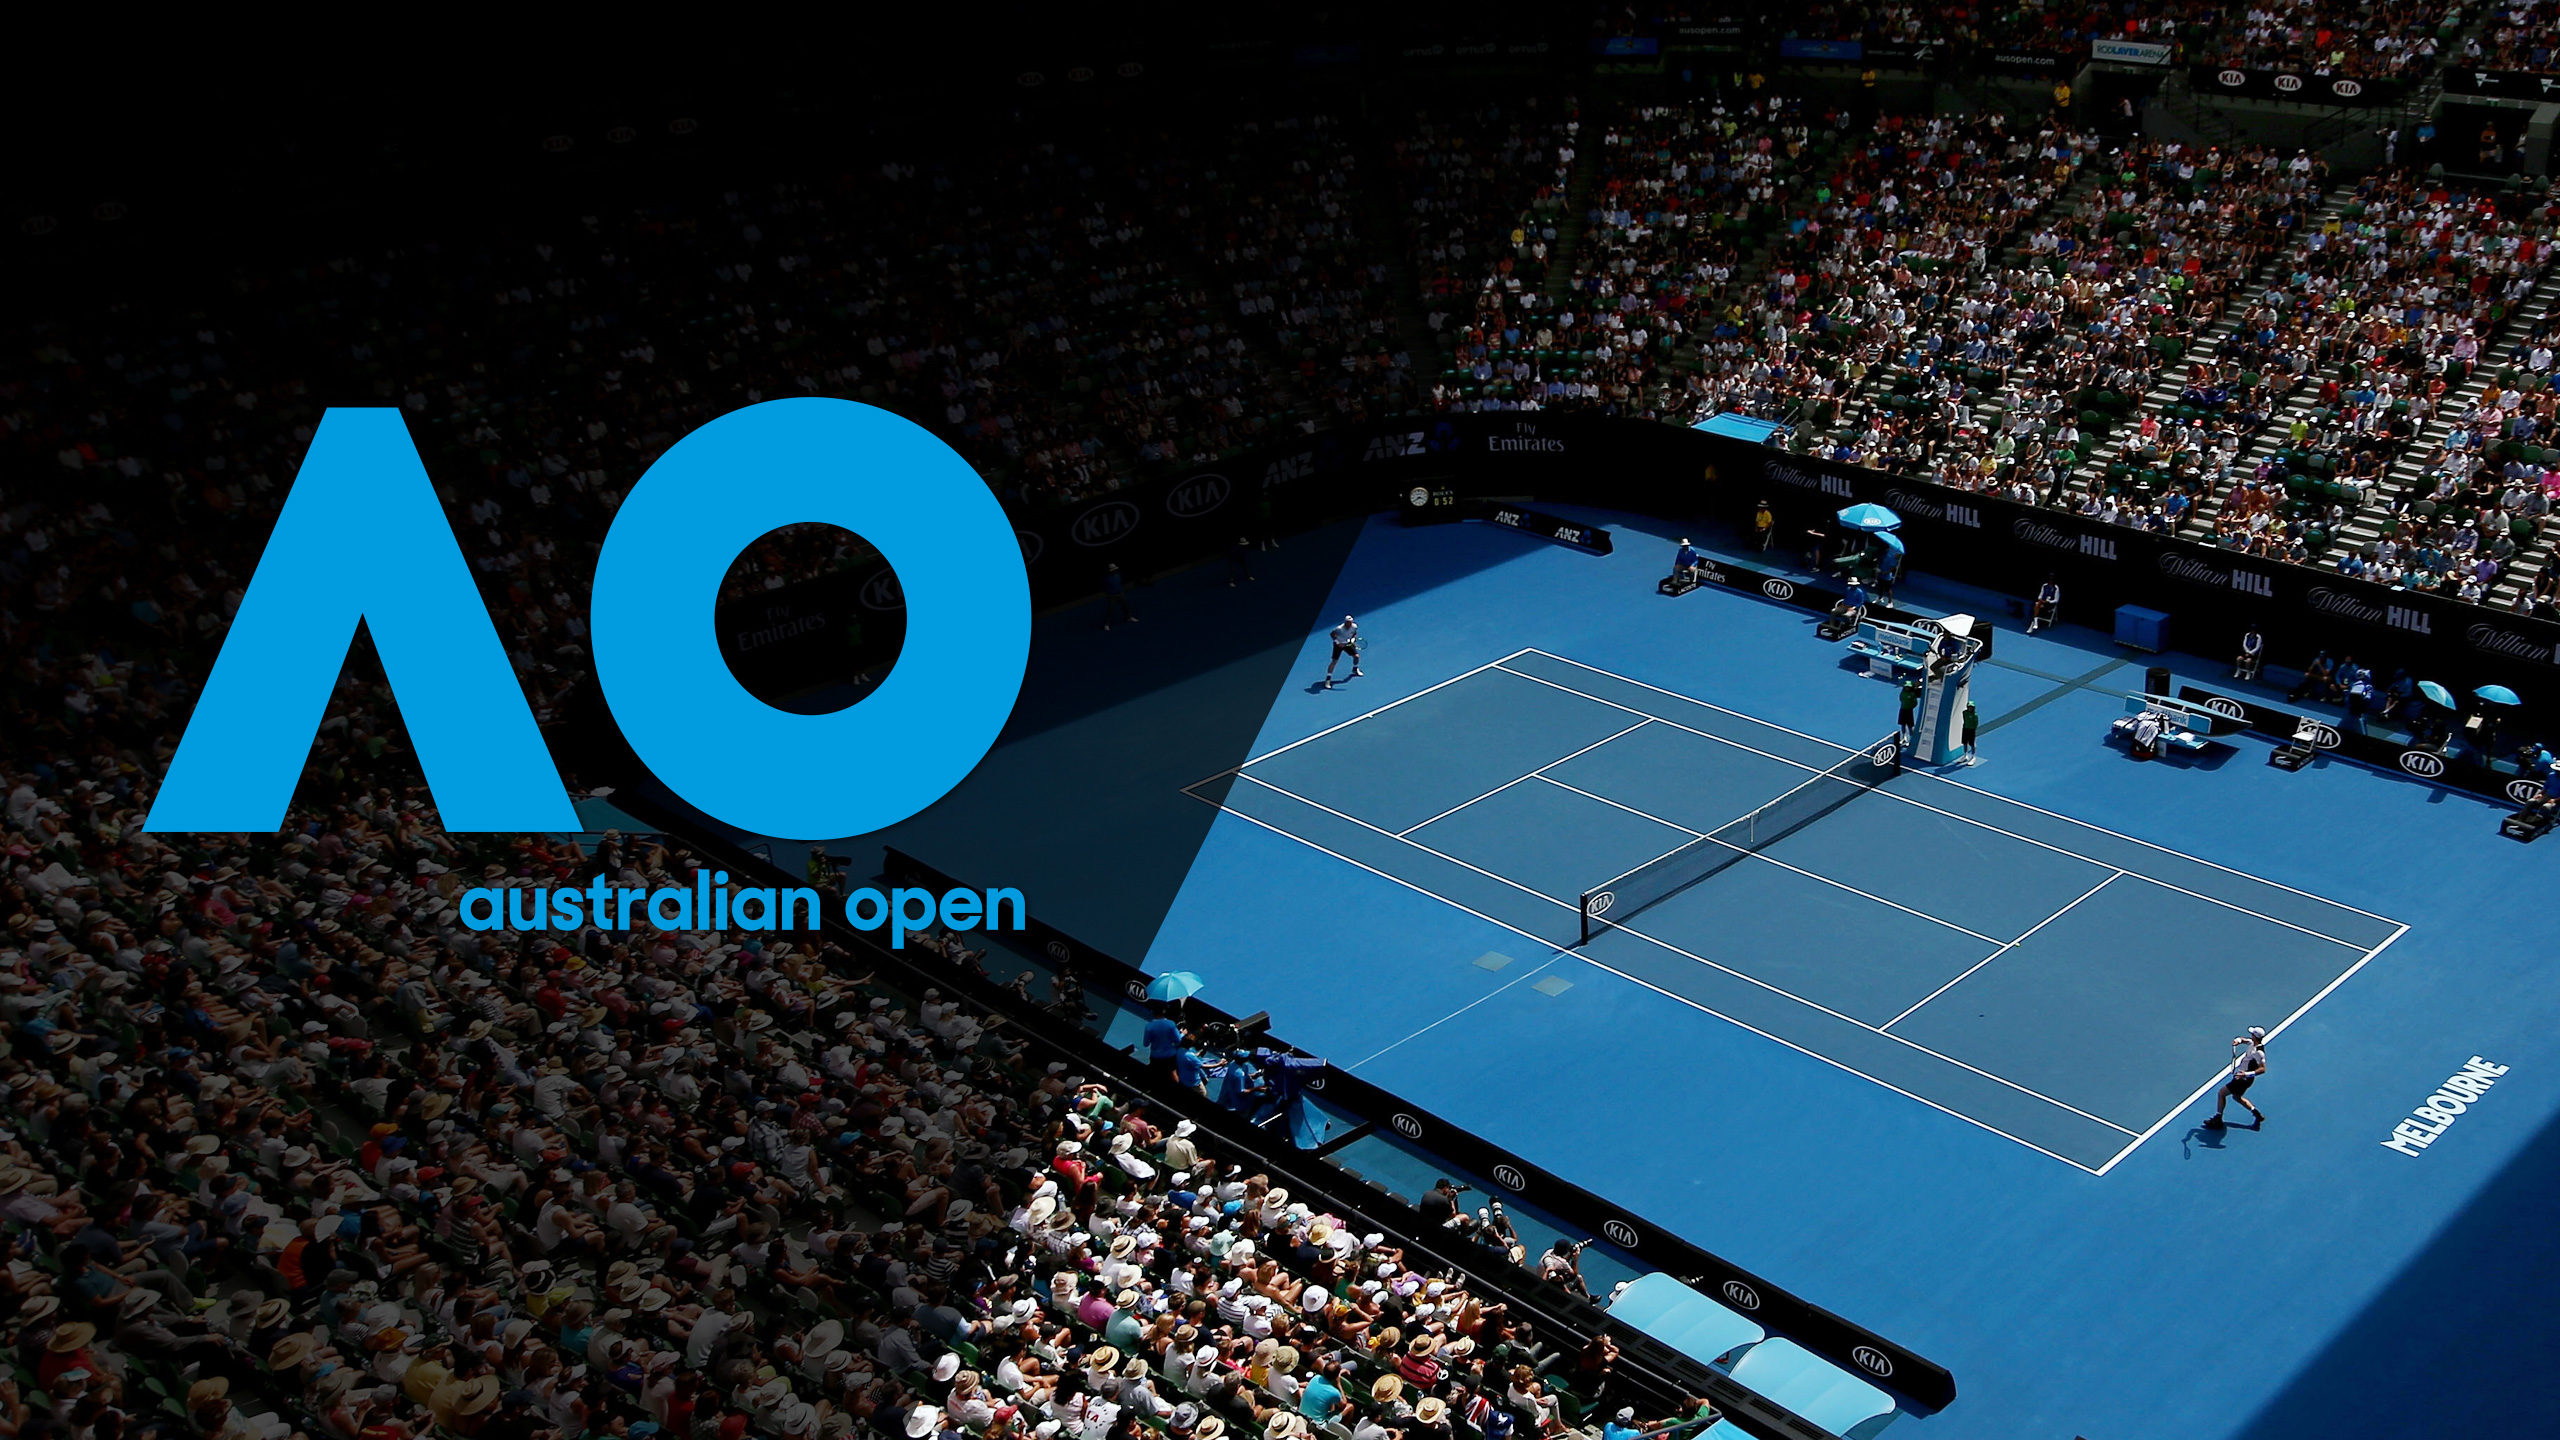 2019 Australian Open: Coverage Presented by SoFi (Men's & Women's Quarterfinals)